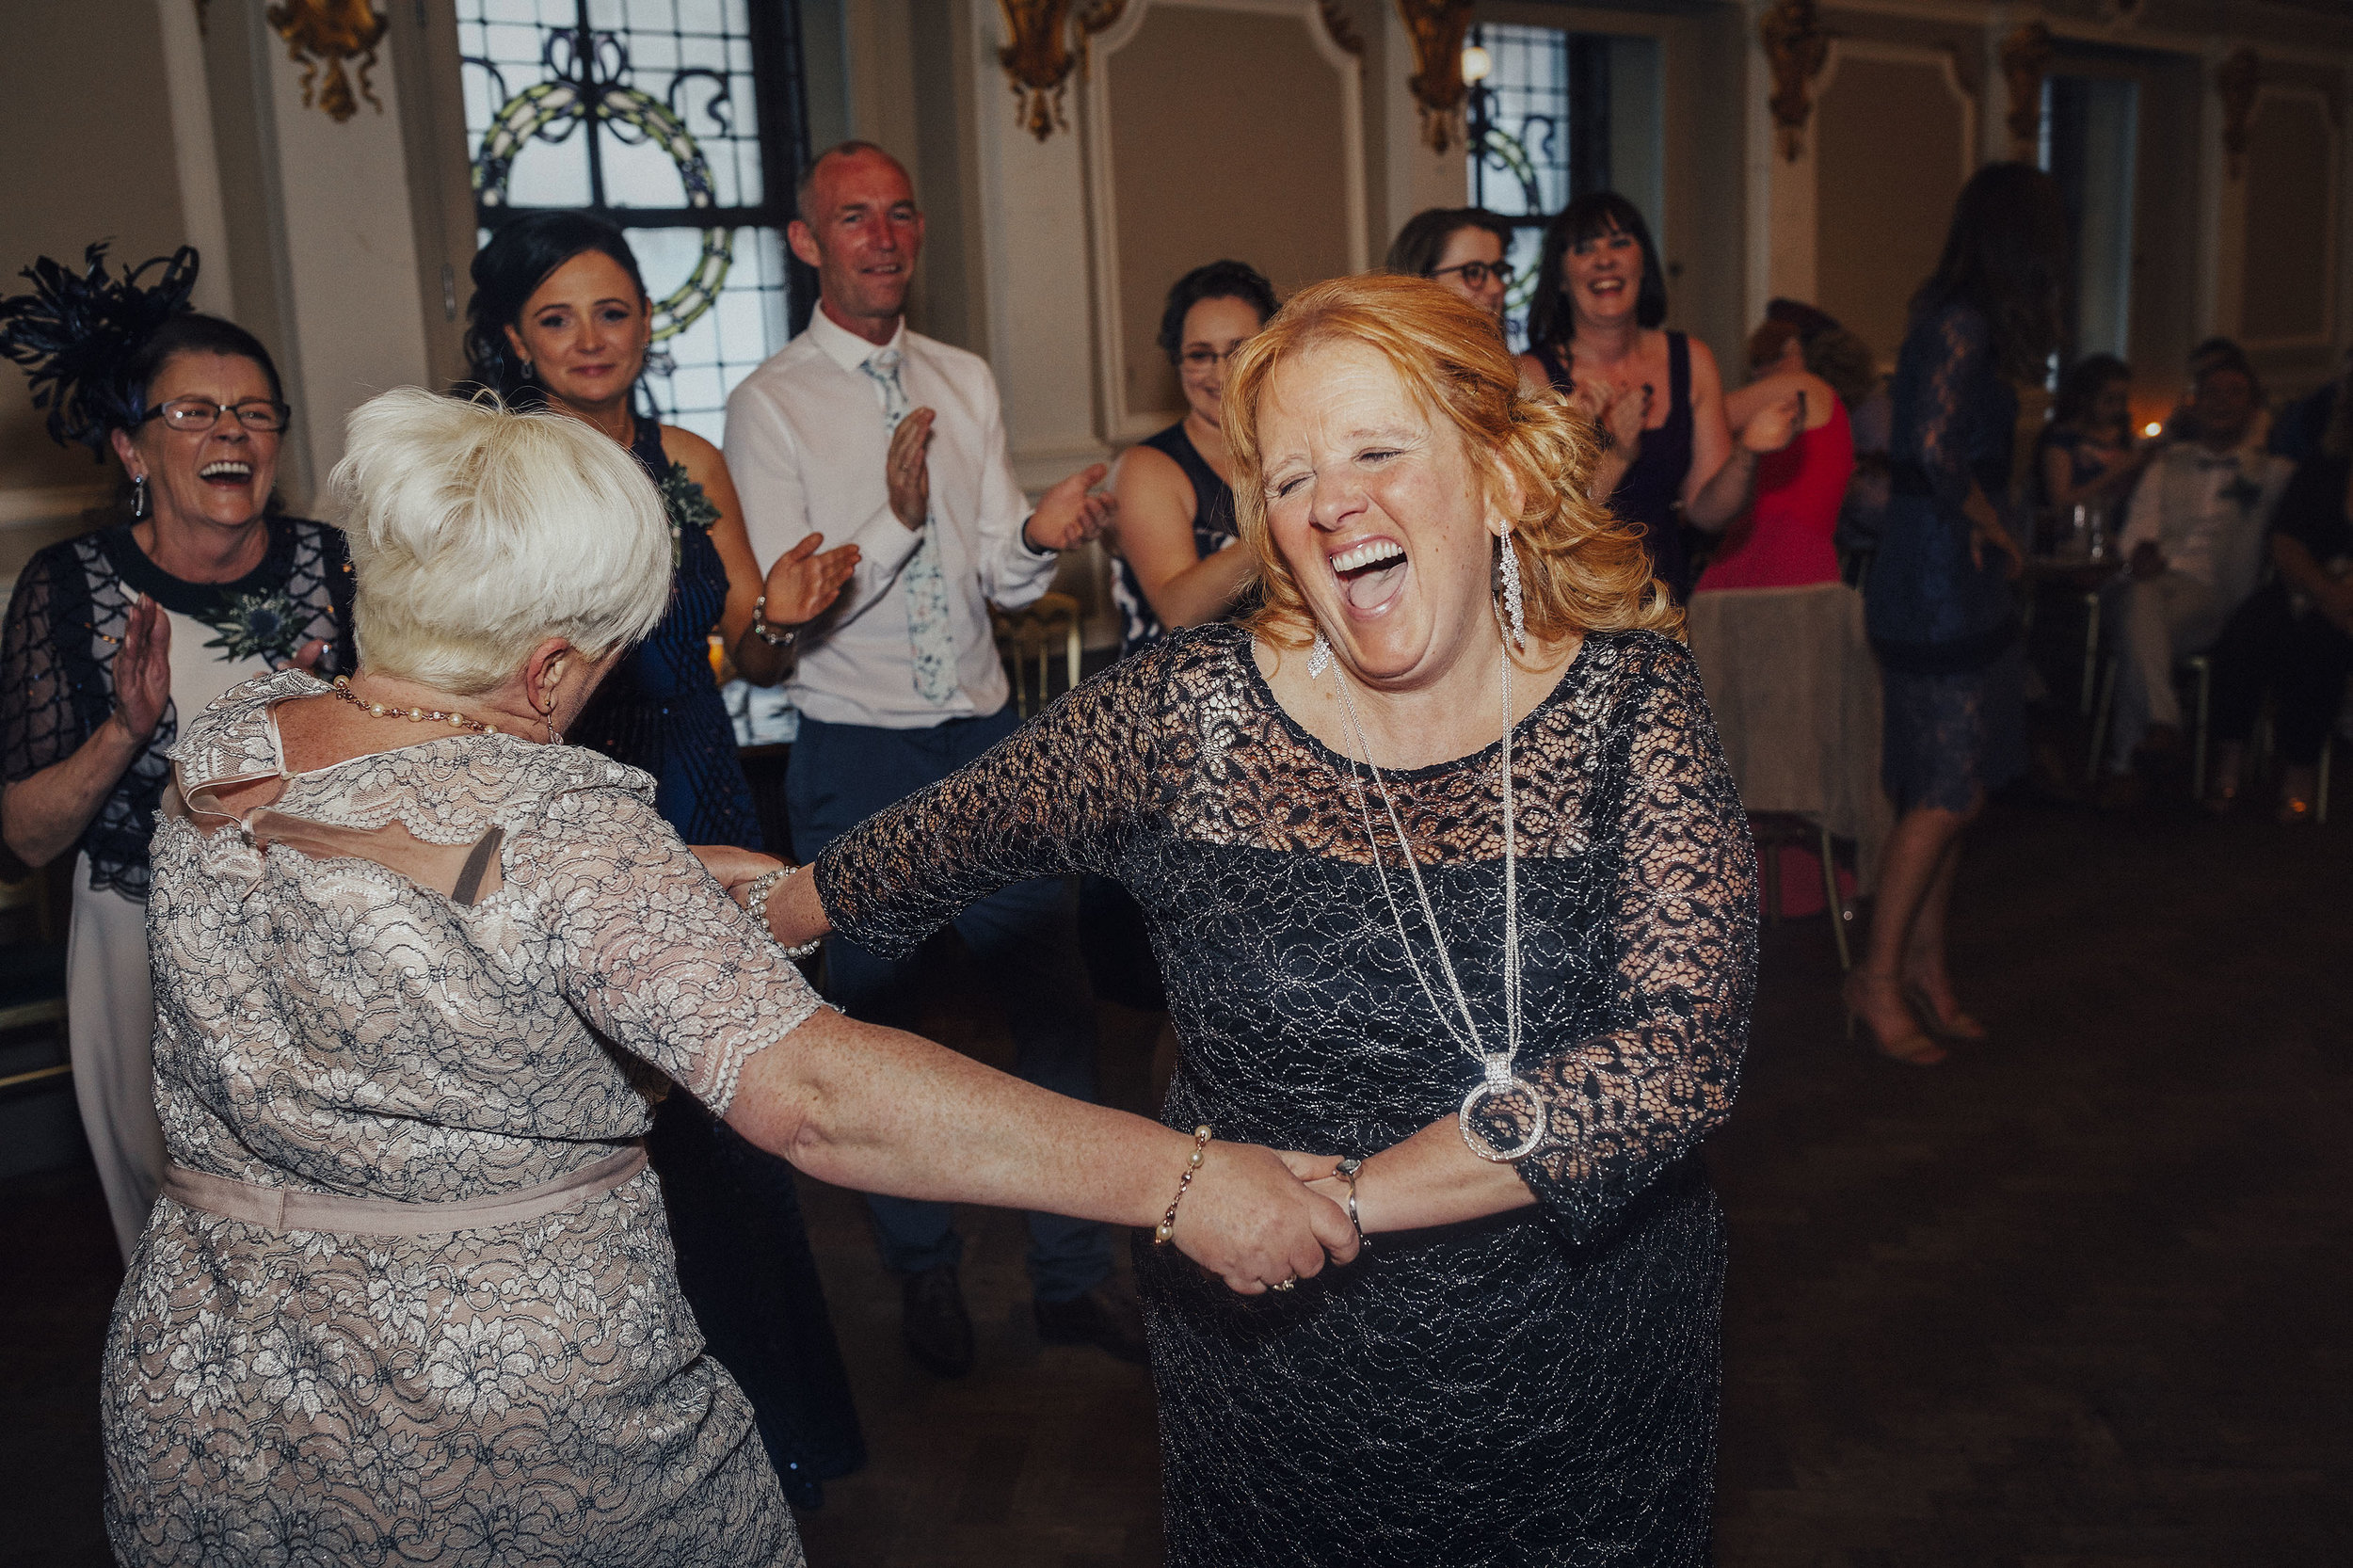 SAME_SEX_WEDDING_PHOTOGRAPHER_SLOANS_GLASGOW_PJ_PHILLIPS_PHOTOGRAPHY_104.jpg